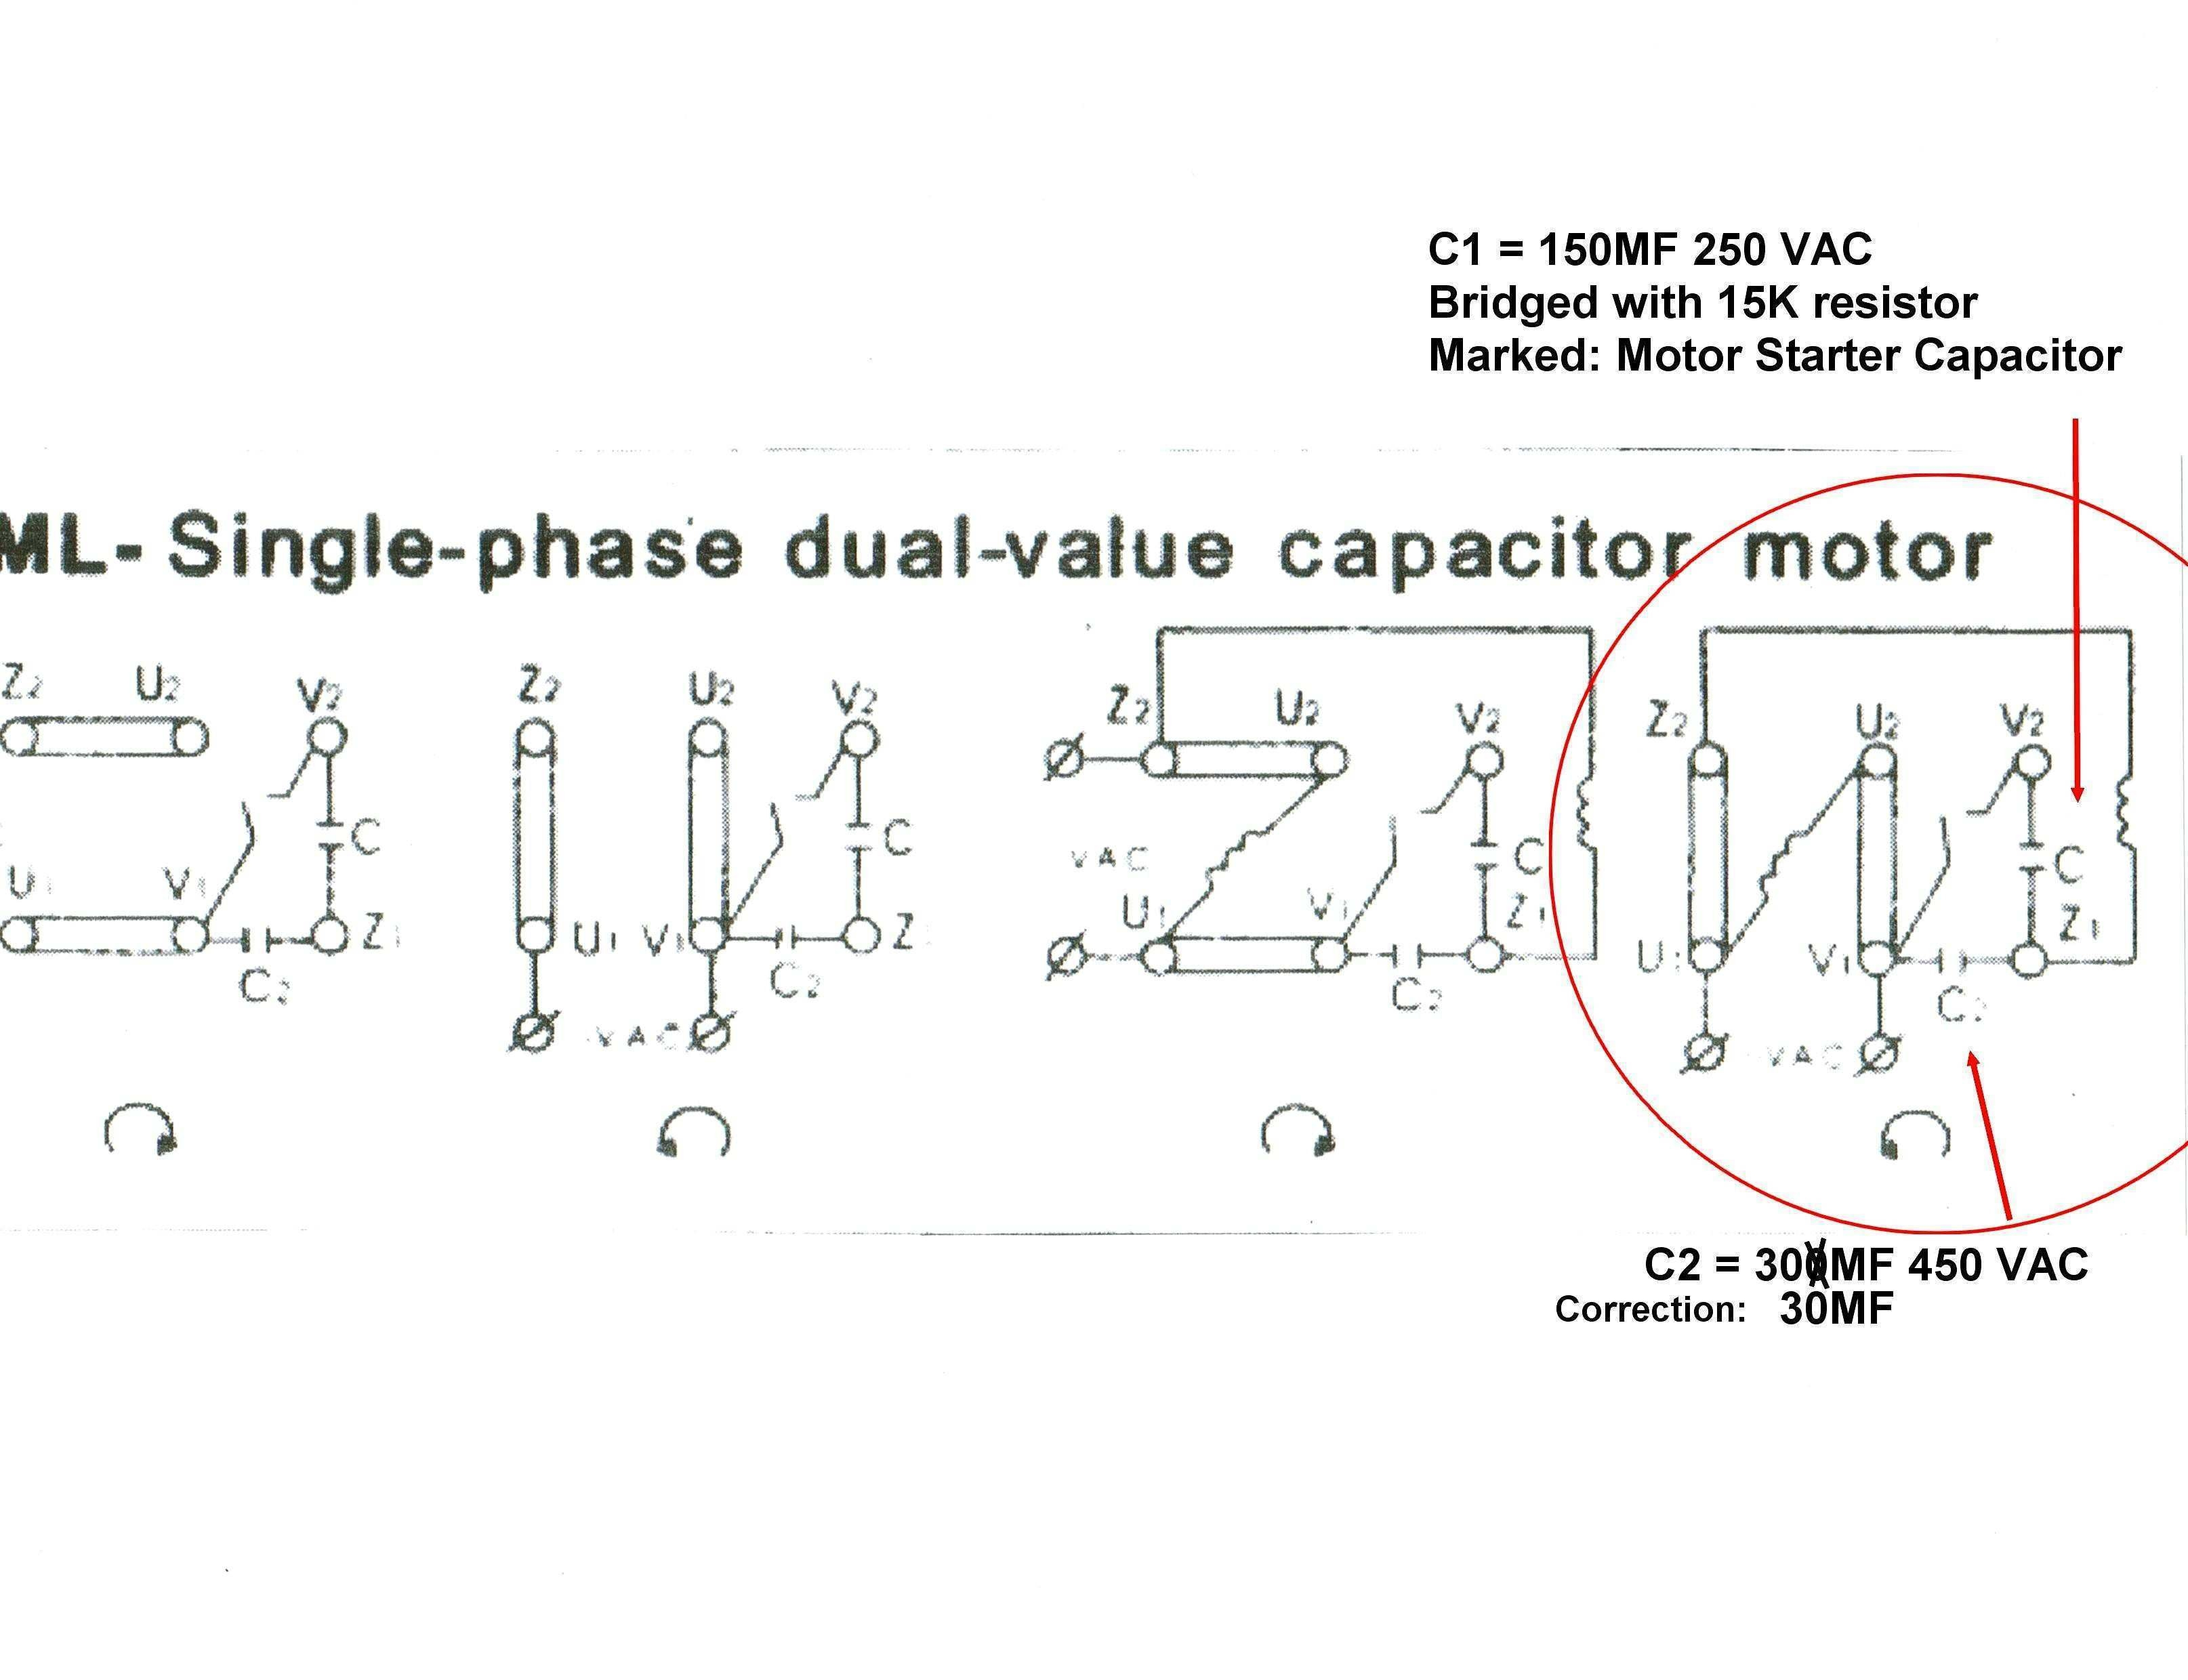 3 phase motor wiring diagram 9 leads Download-3 Phase Motor Wiring Diagram 9 Leads Perfect Luxury 9 Lead Motor Wiring Diagram Pattern Electrical Diagram 15-r